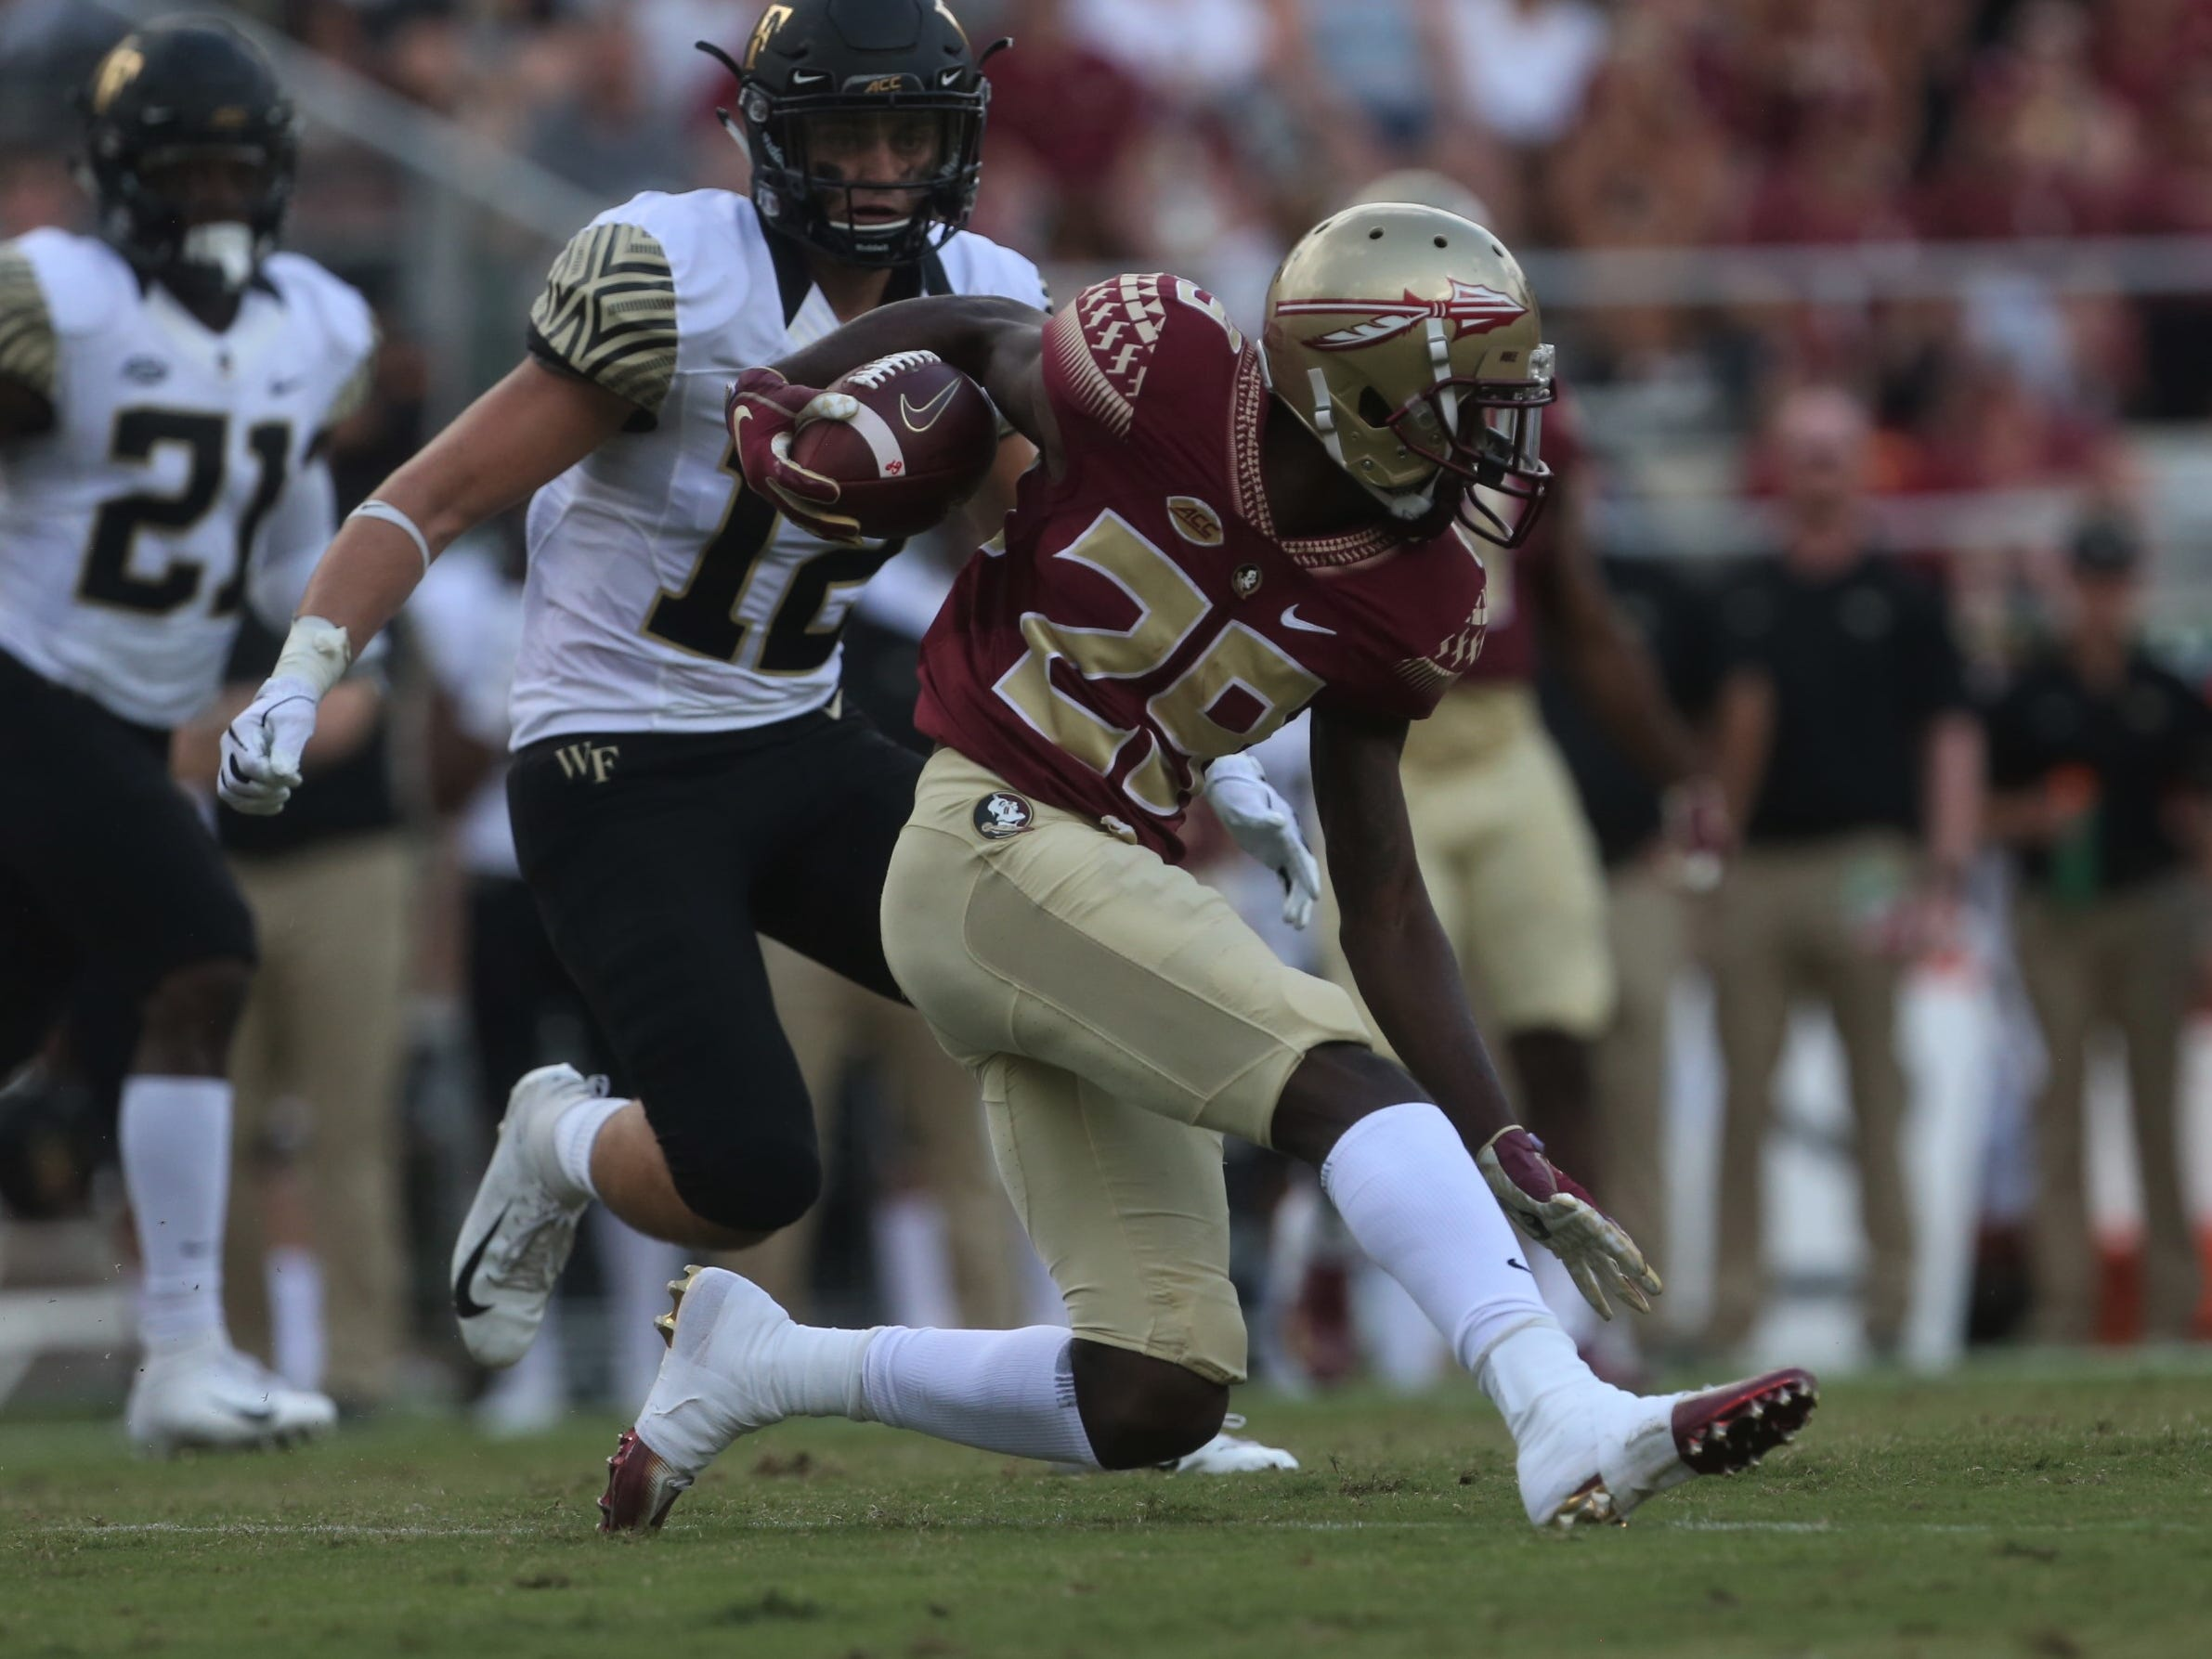 Florida State's D.J. Matthews puts on the brakes on a punt return as Wake Forest's Luke Masteron approaches for a tackle during a game at Doak Campbell Stadium on Saturday, Oct. 20, 2018.